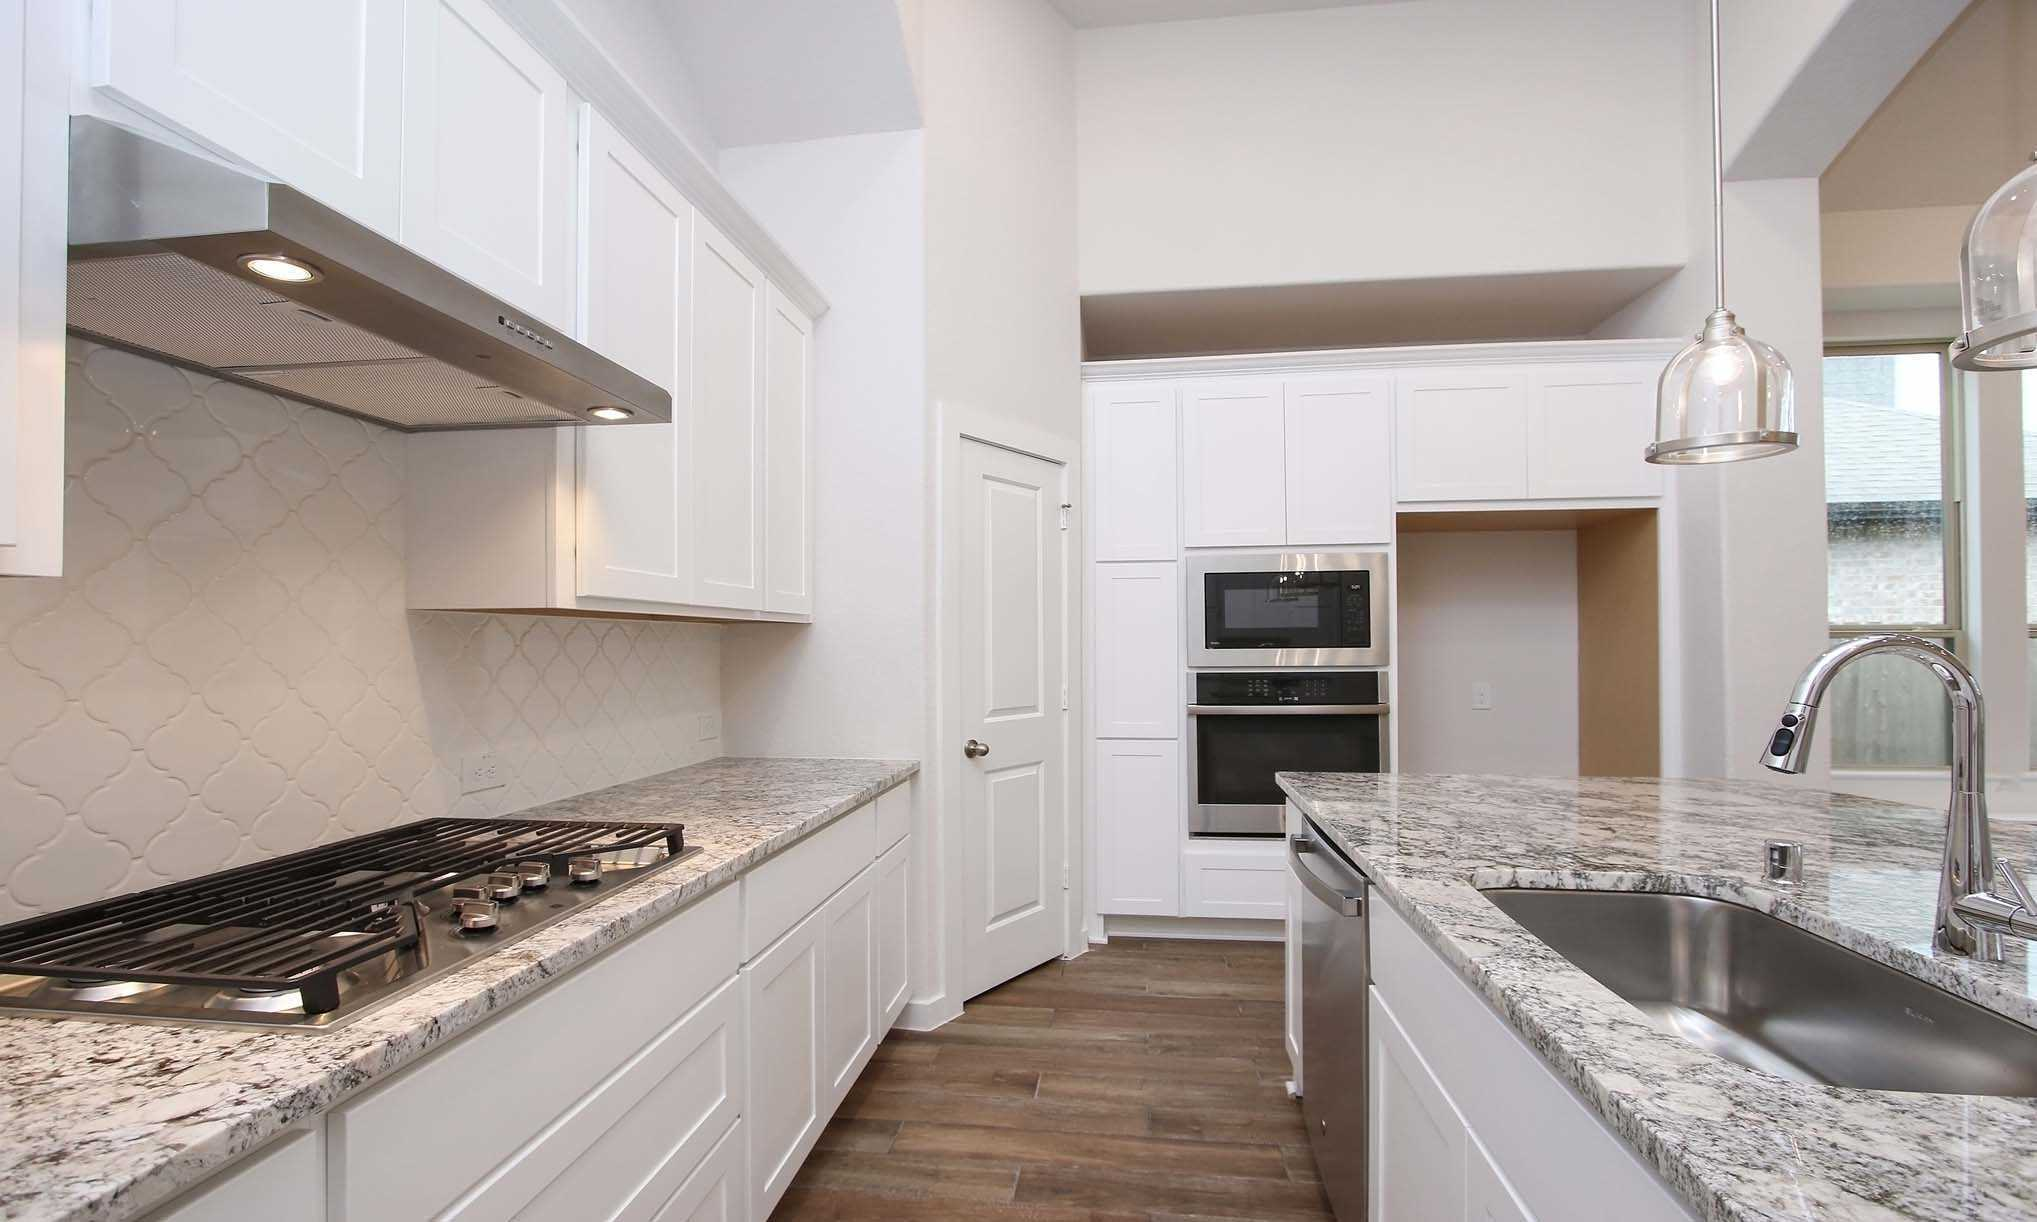 Kitchen featured in the Plan 540 By Highland Homes in Houston, TX